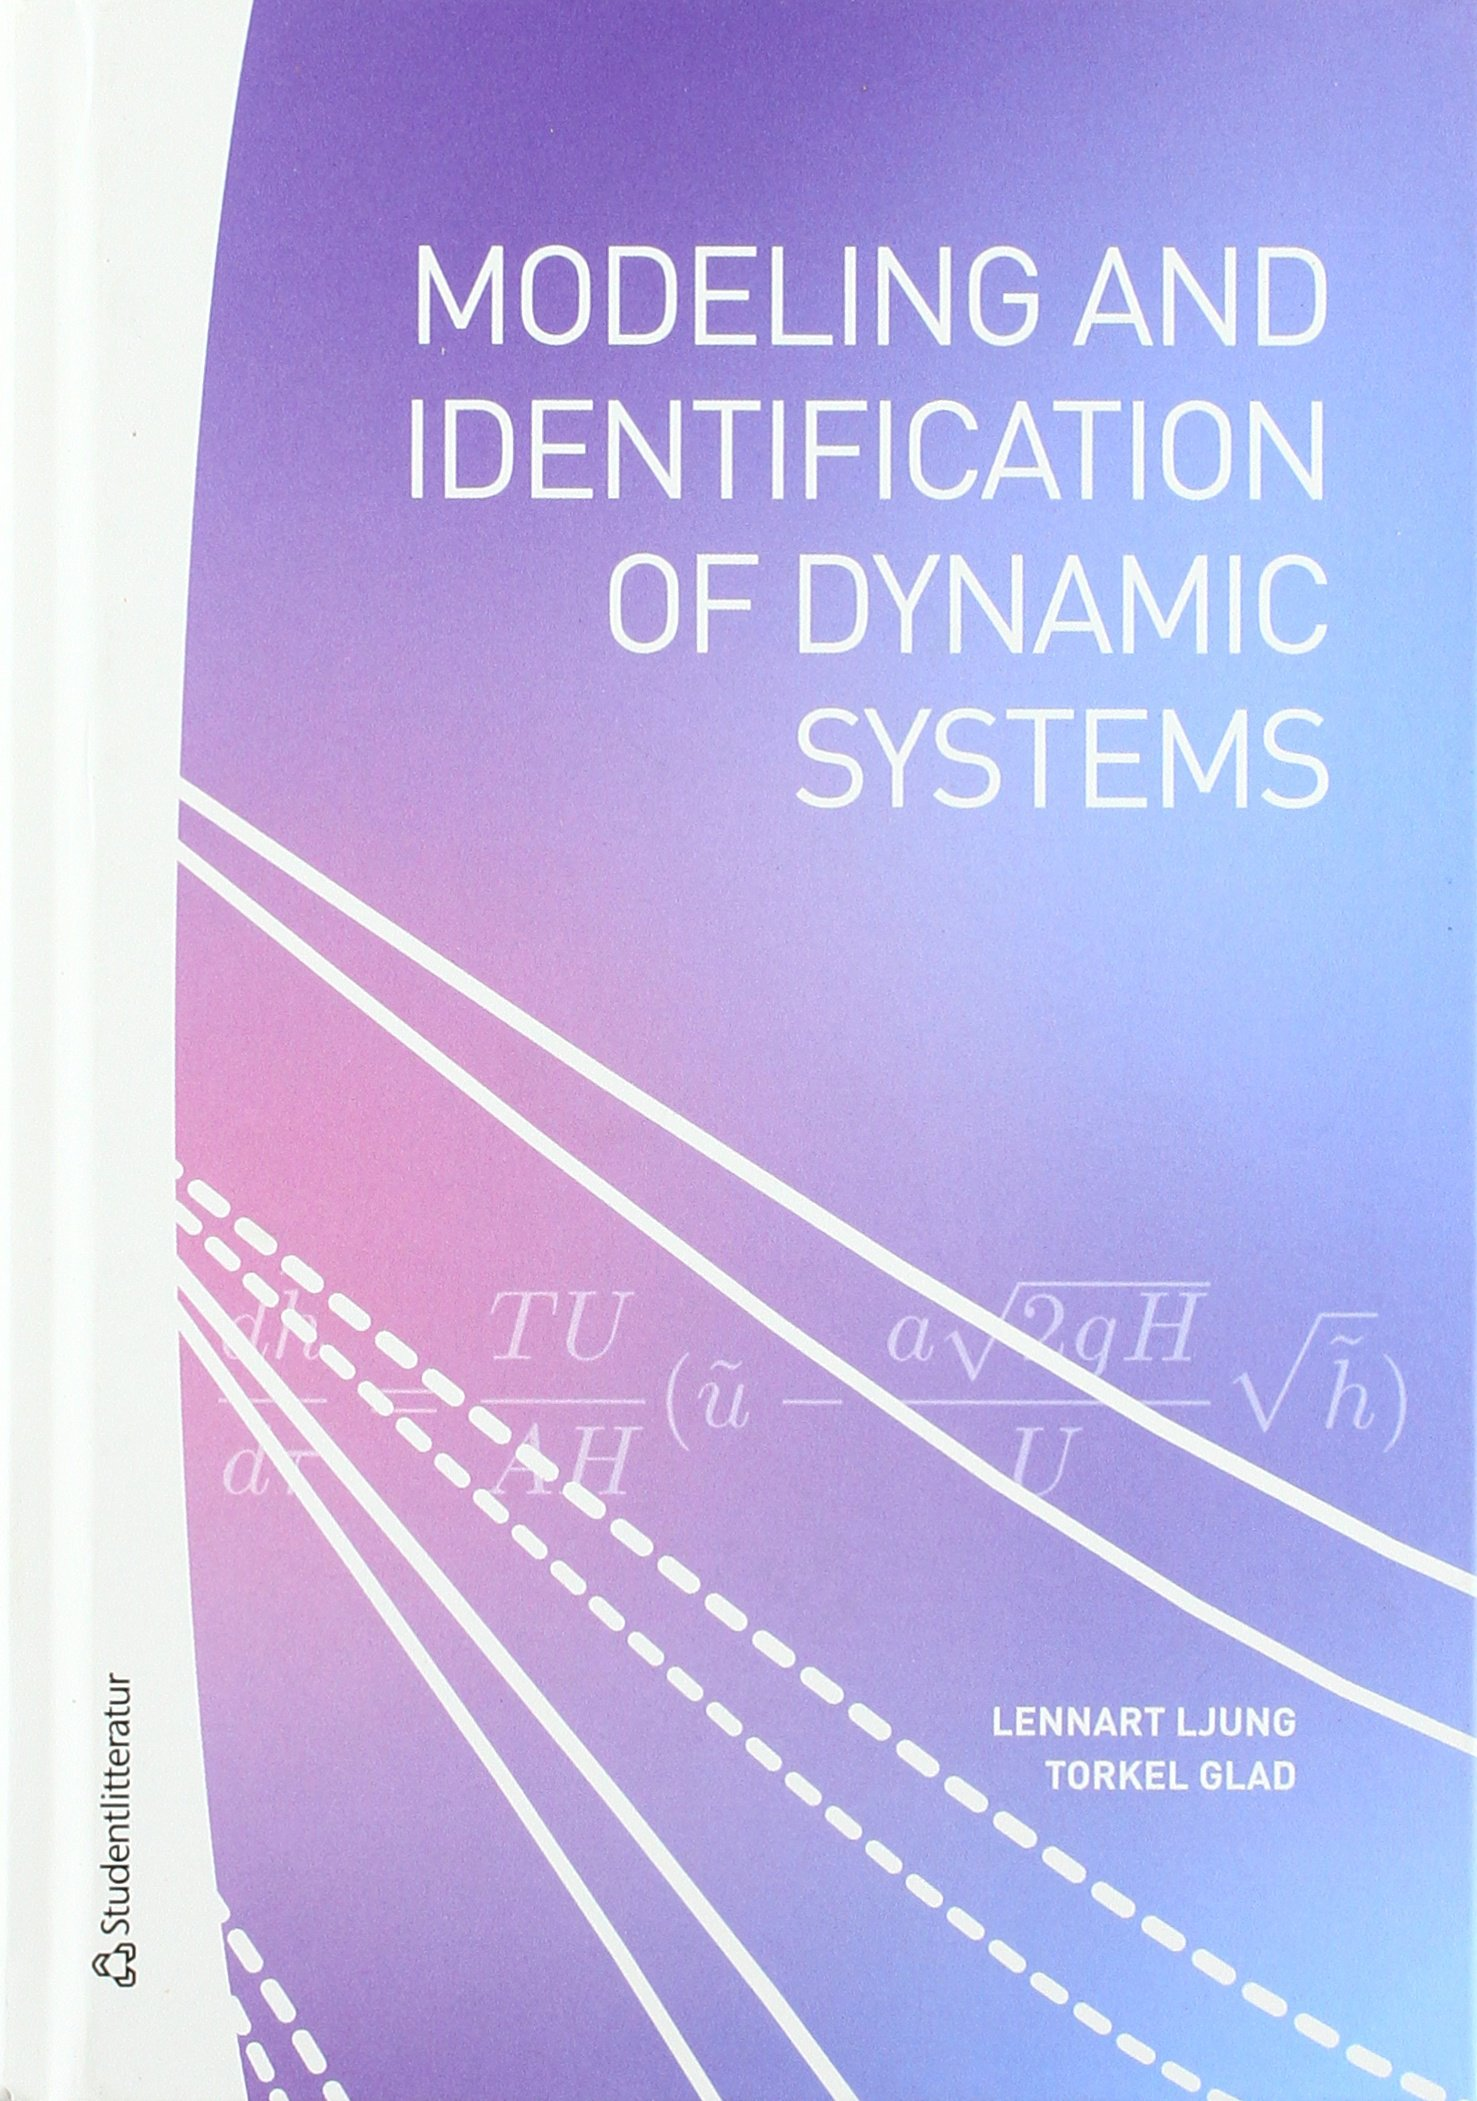 Modeling & Identification of Dynamic Systems: Lennart Ljung: 9789144116884:  Amazon.com: Books